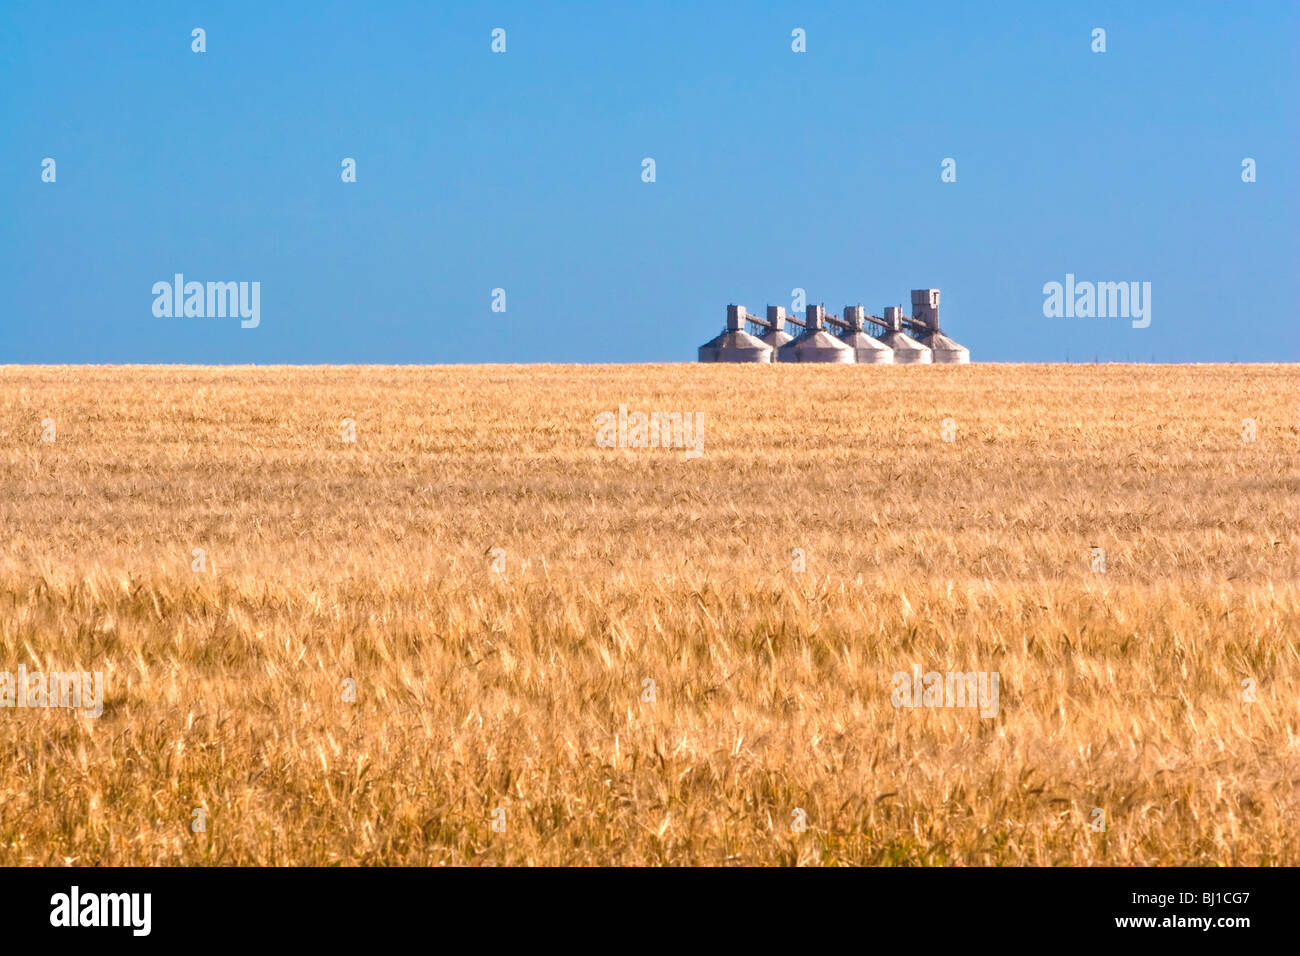 Wheat Field and Silos - Stock Image